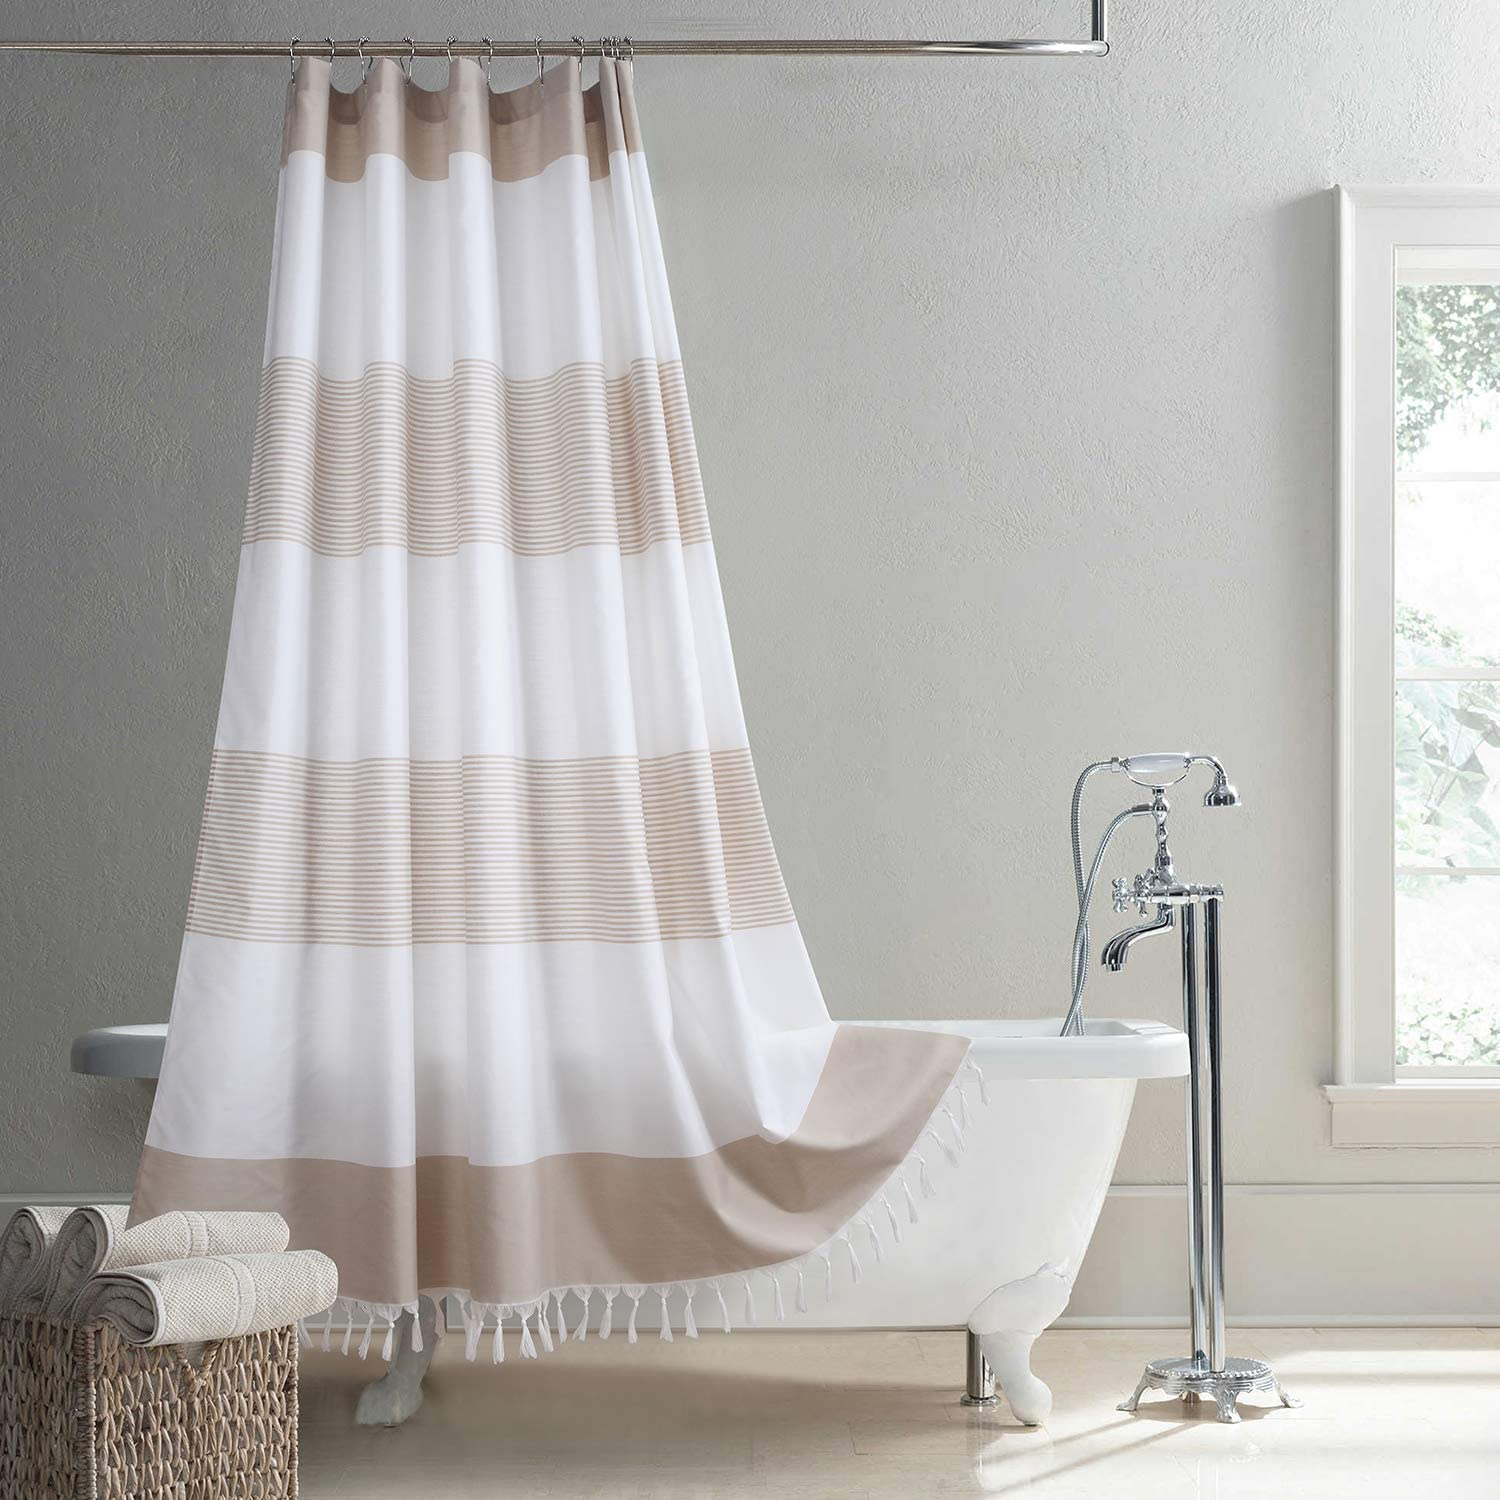 Ranking TOP3 Free shipping DS Curtain Suson Taupe Yarn Fabric Stripes Polyester Dyed Waterp